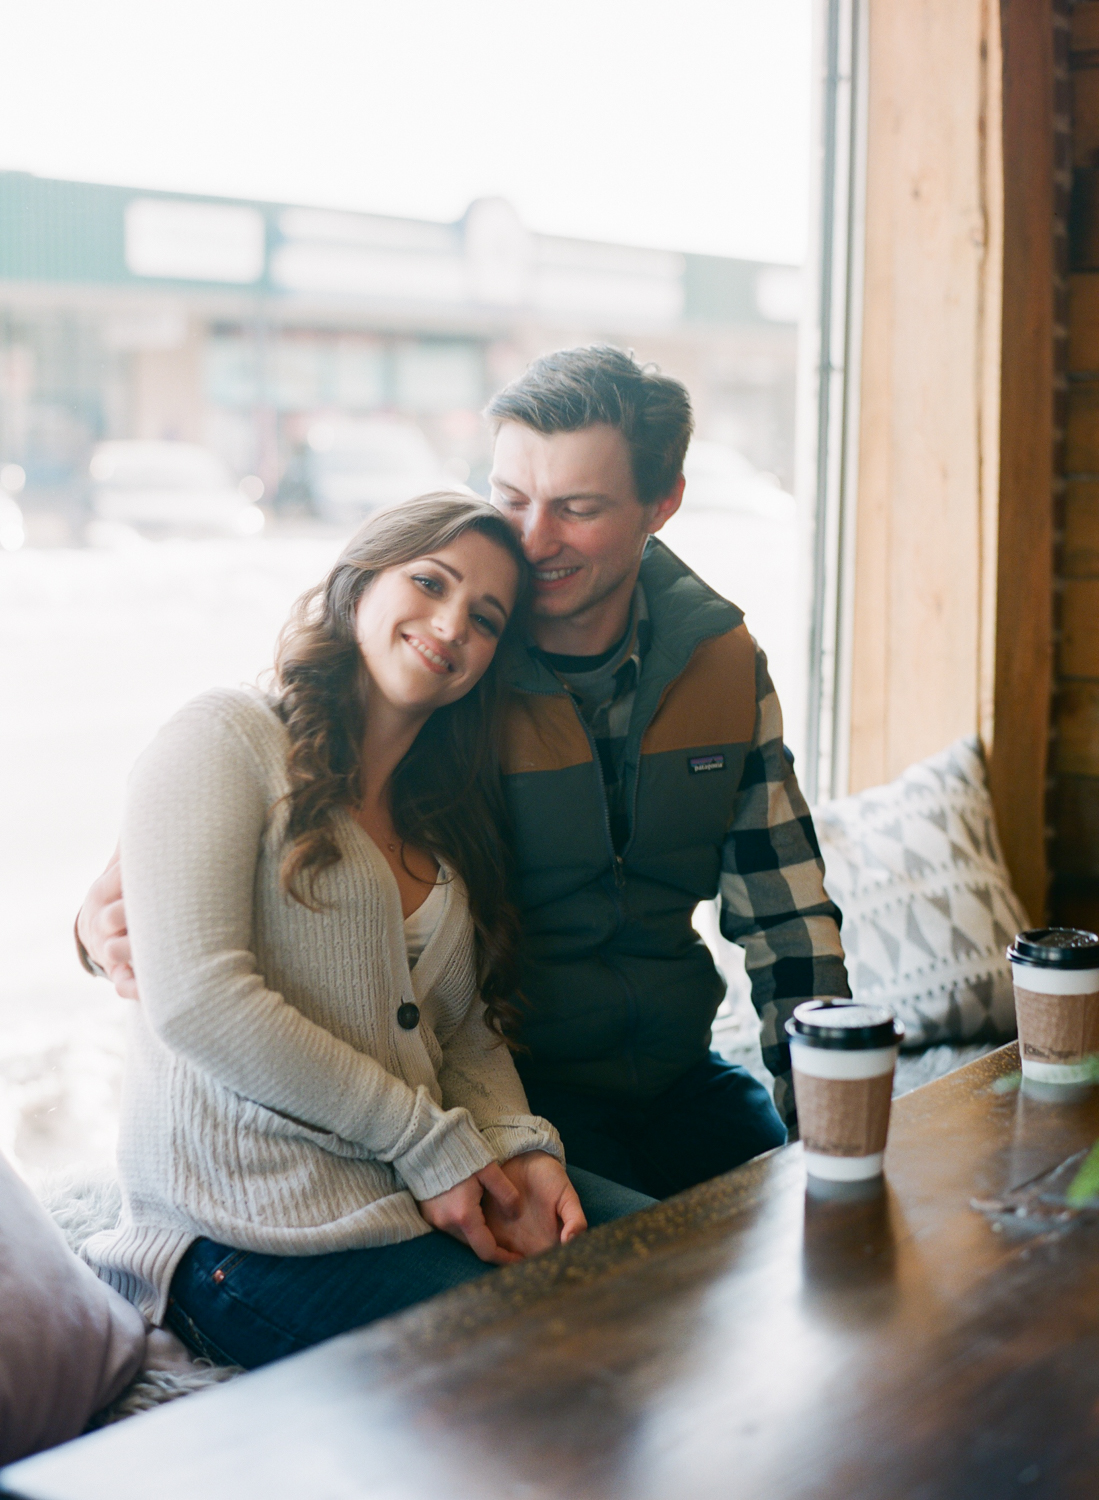 Halifax Wedding Photographer, winter engagement session, Truro Nova Scotia, Canadian Engagement Session, Jacqueline Anne Photography